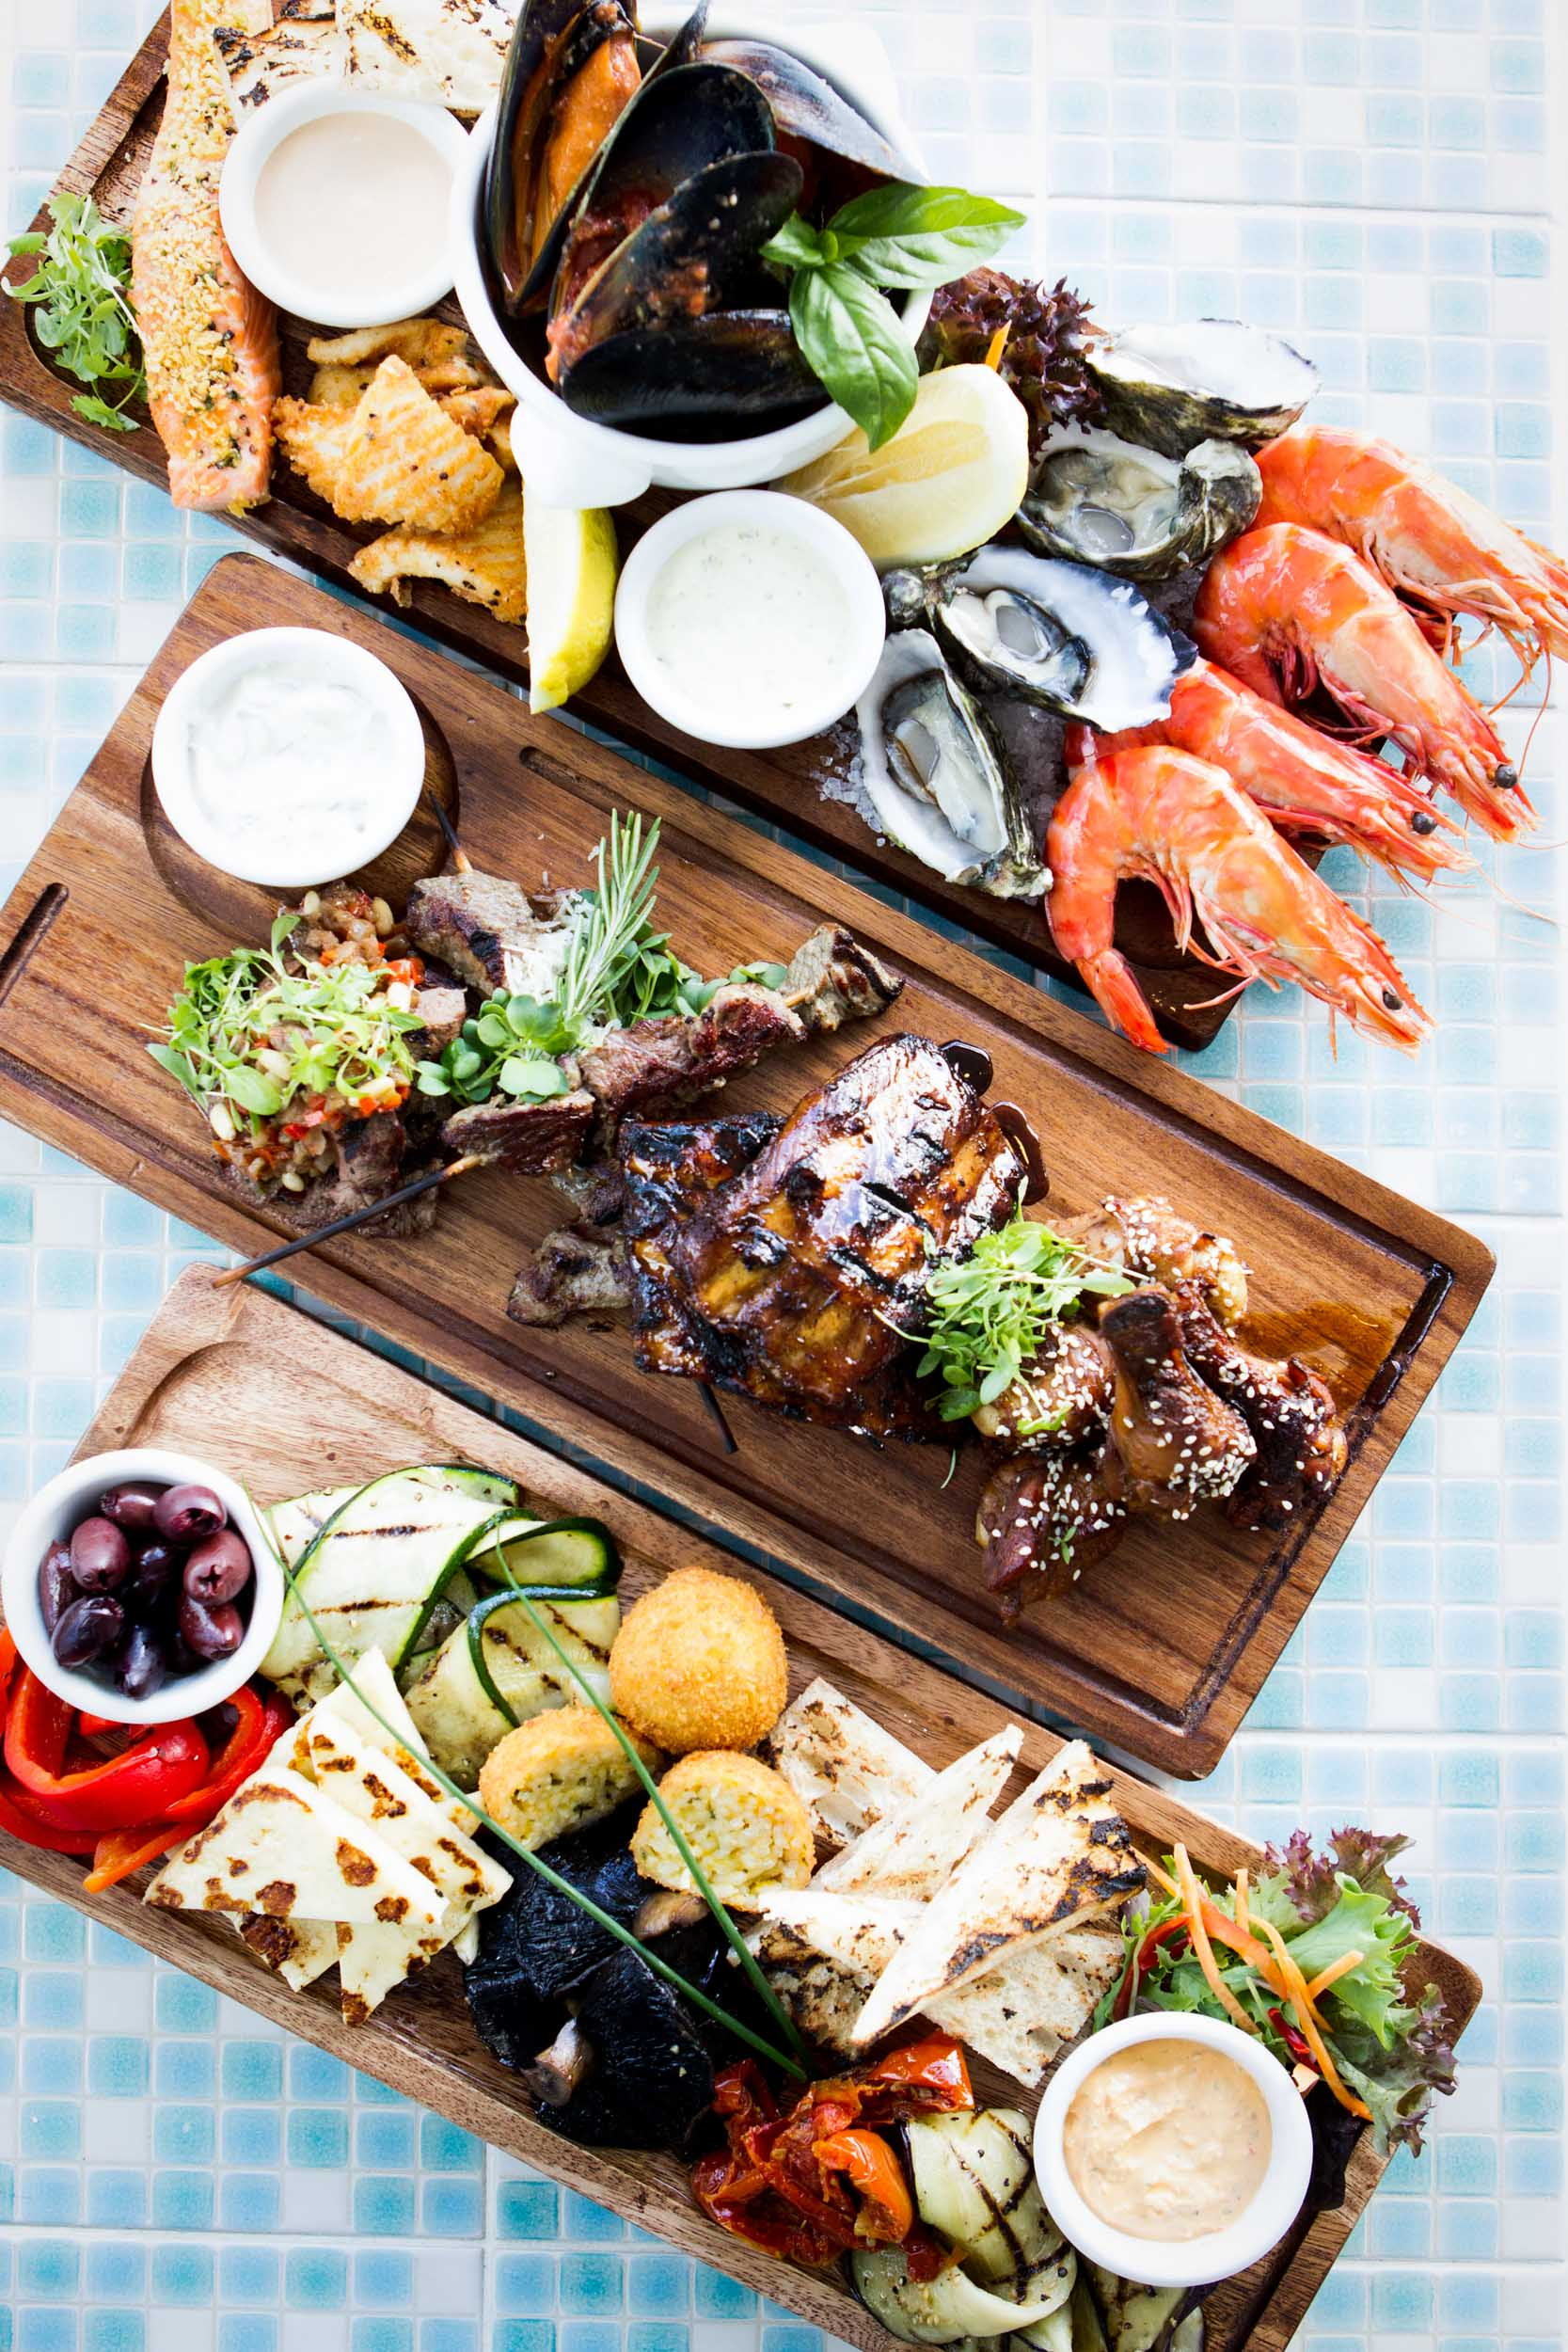 Brisbane Food & Drink Photography | Brisbane Corporate & Commercial Photography